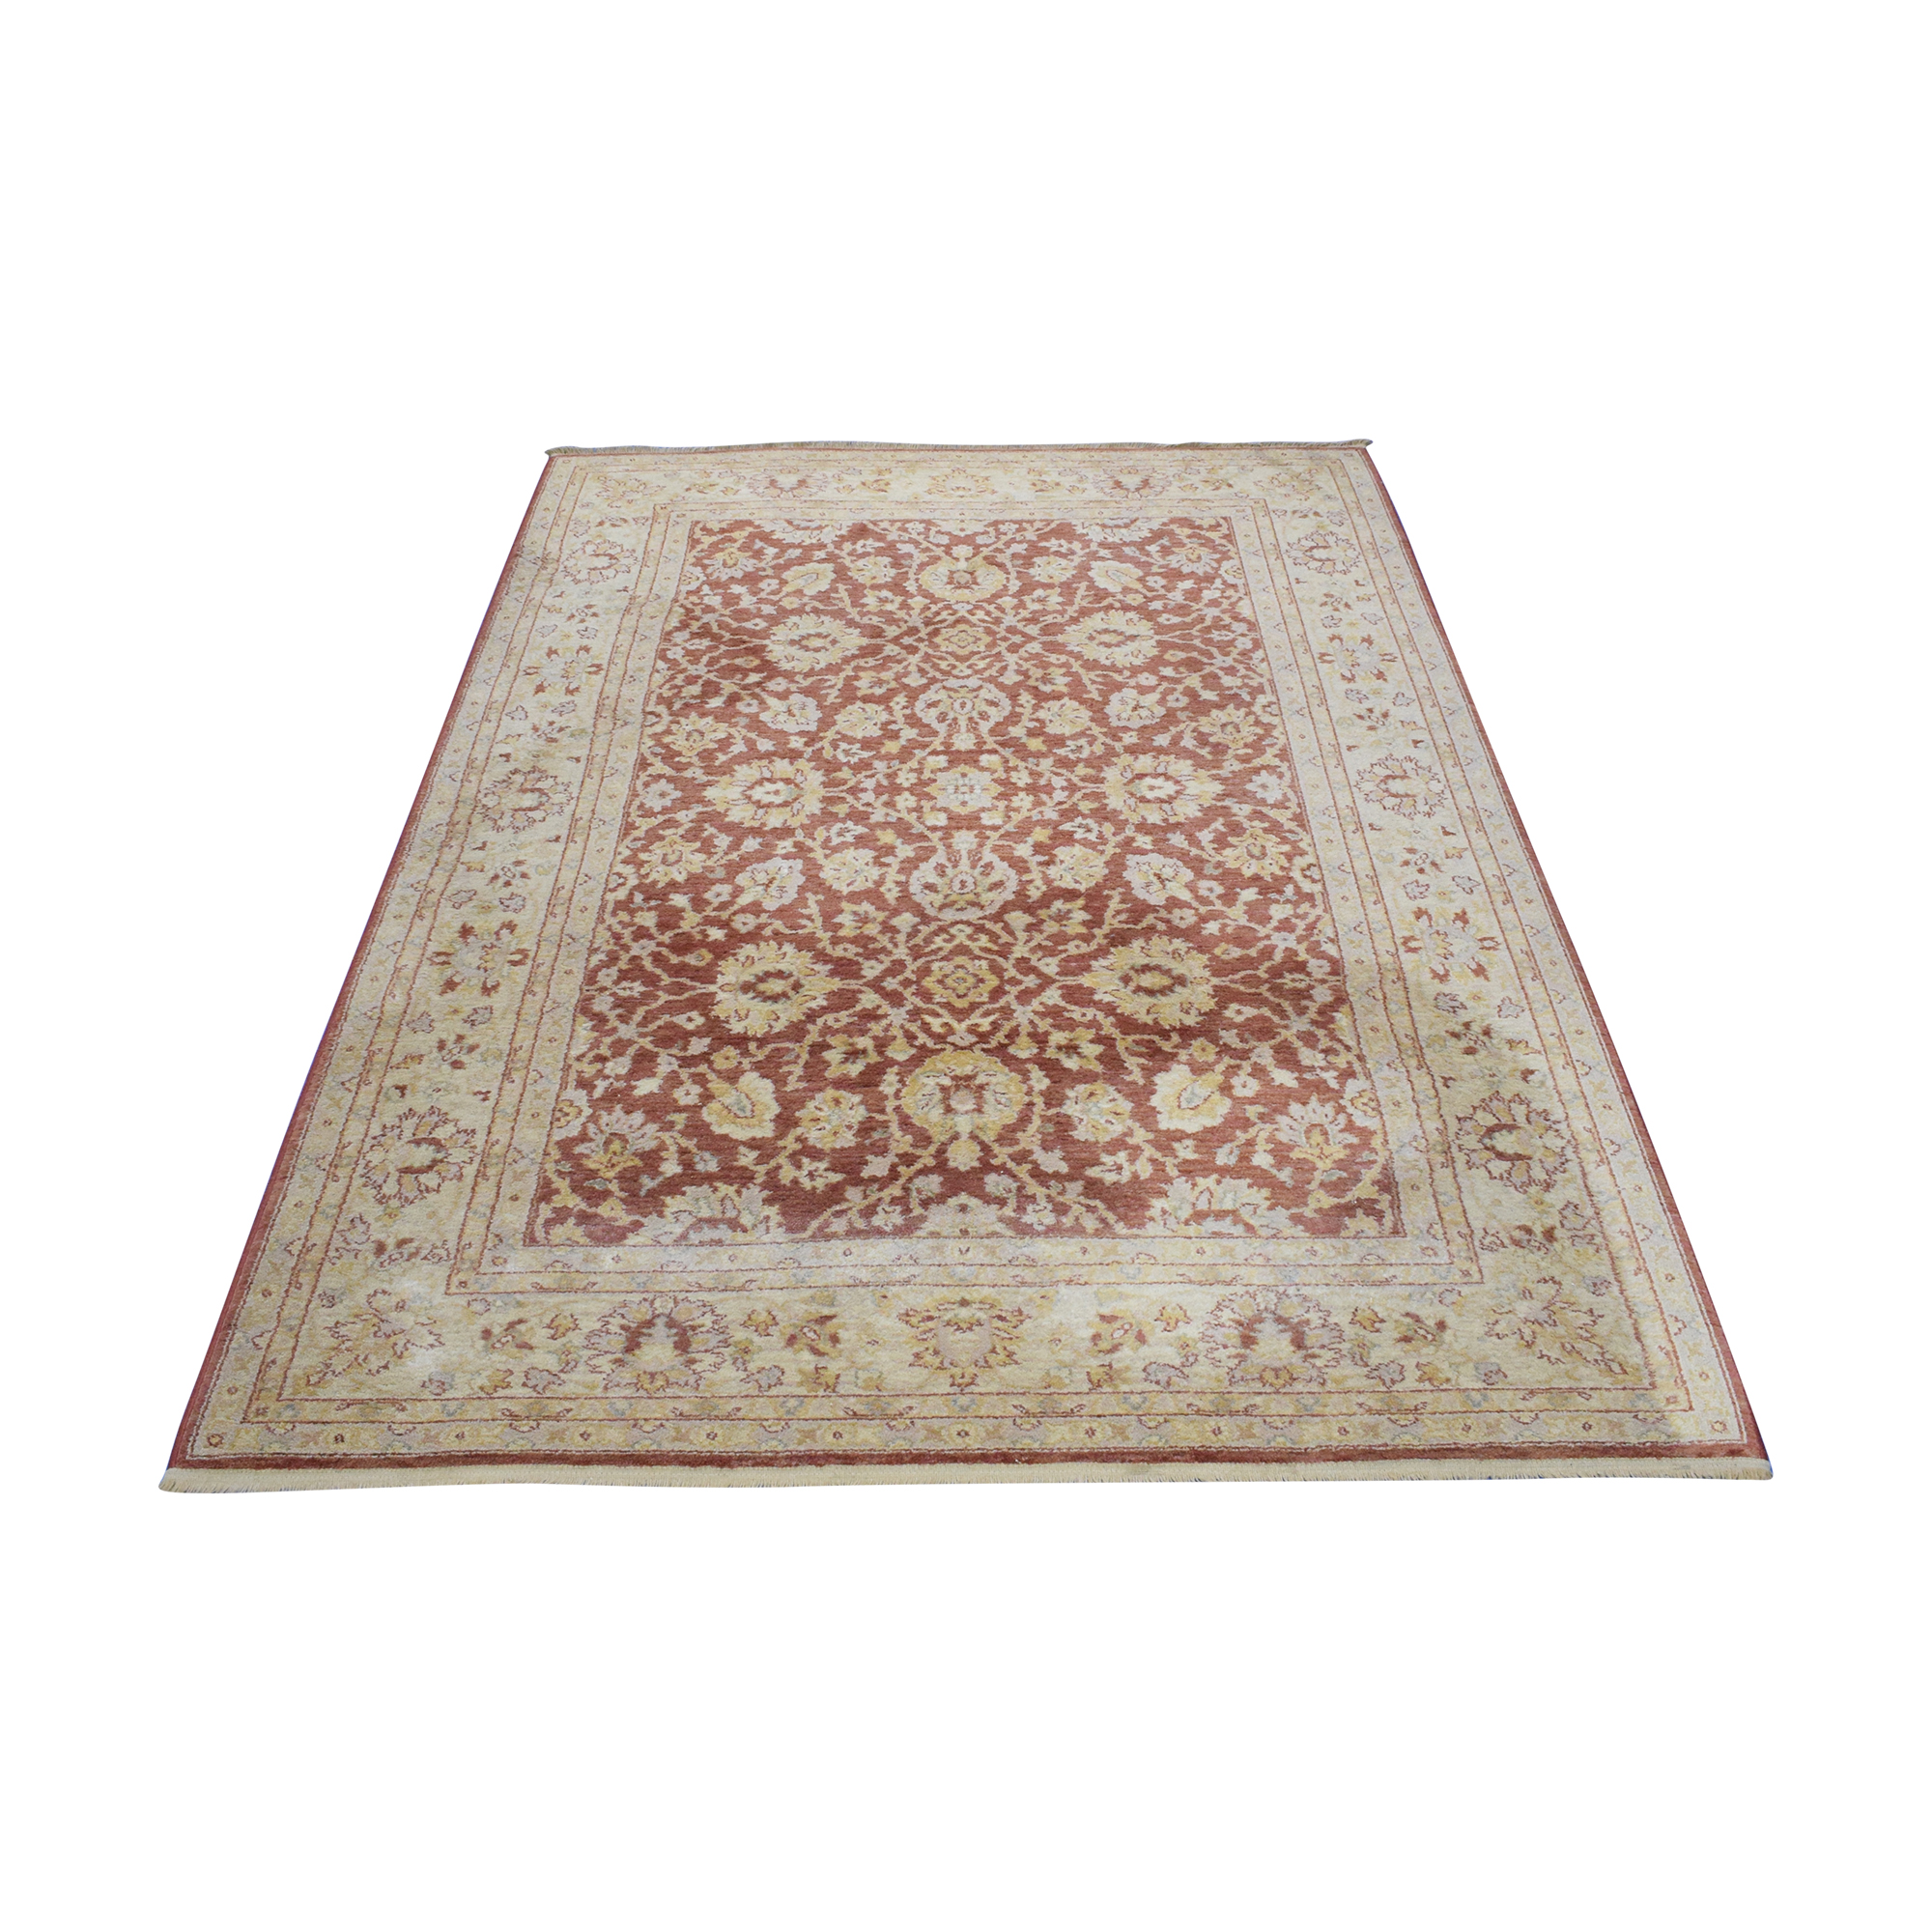 shop ABC Carpet & Home Area Rug ABC Carpet & Home Decor